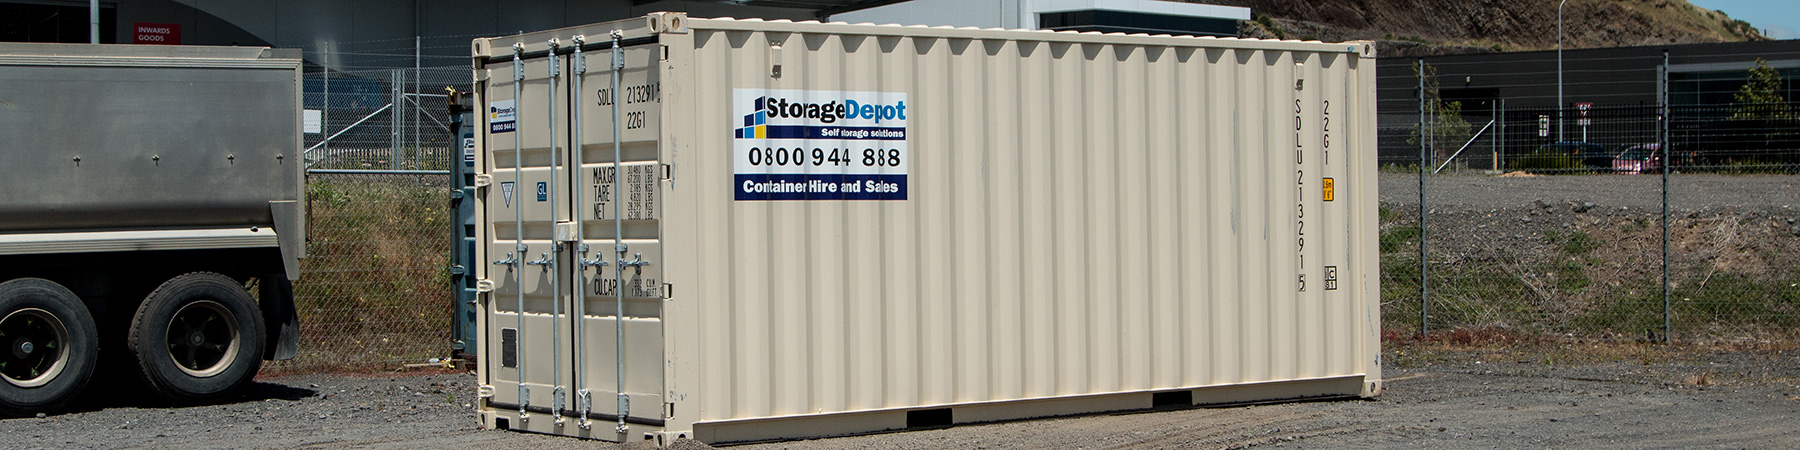 Shipping Containers rent or buy NZ | Self Storage Auckland ...